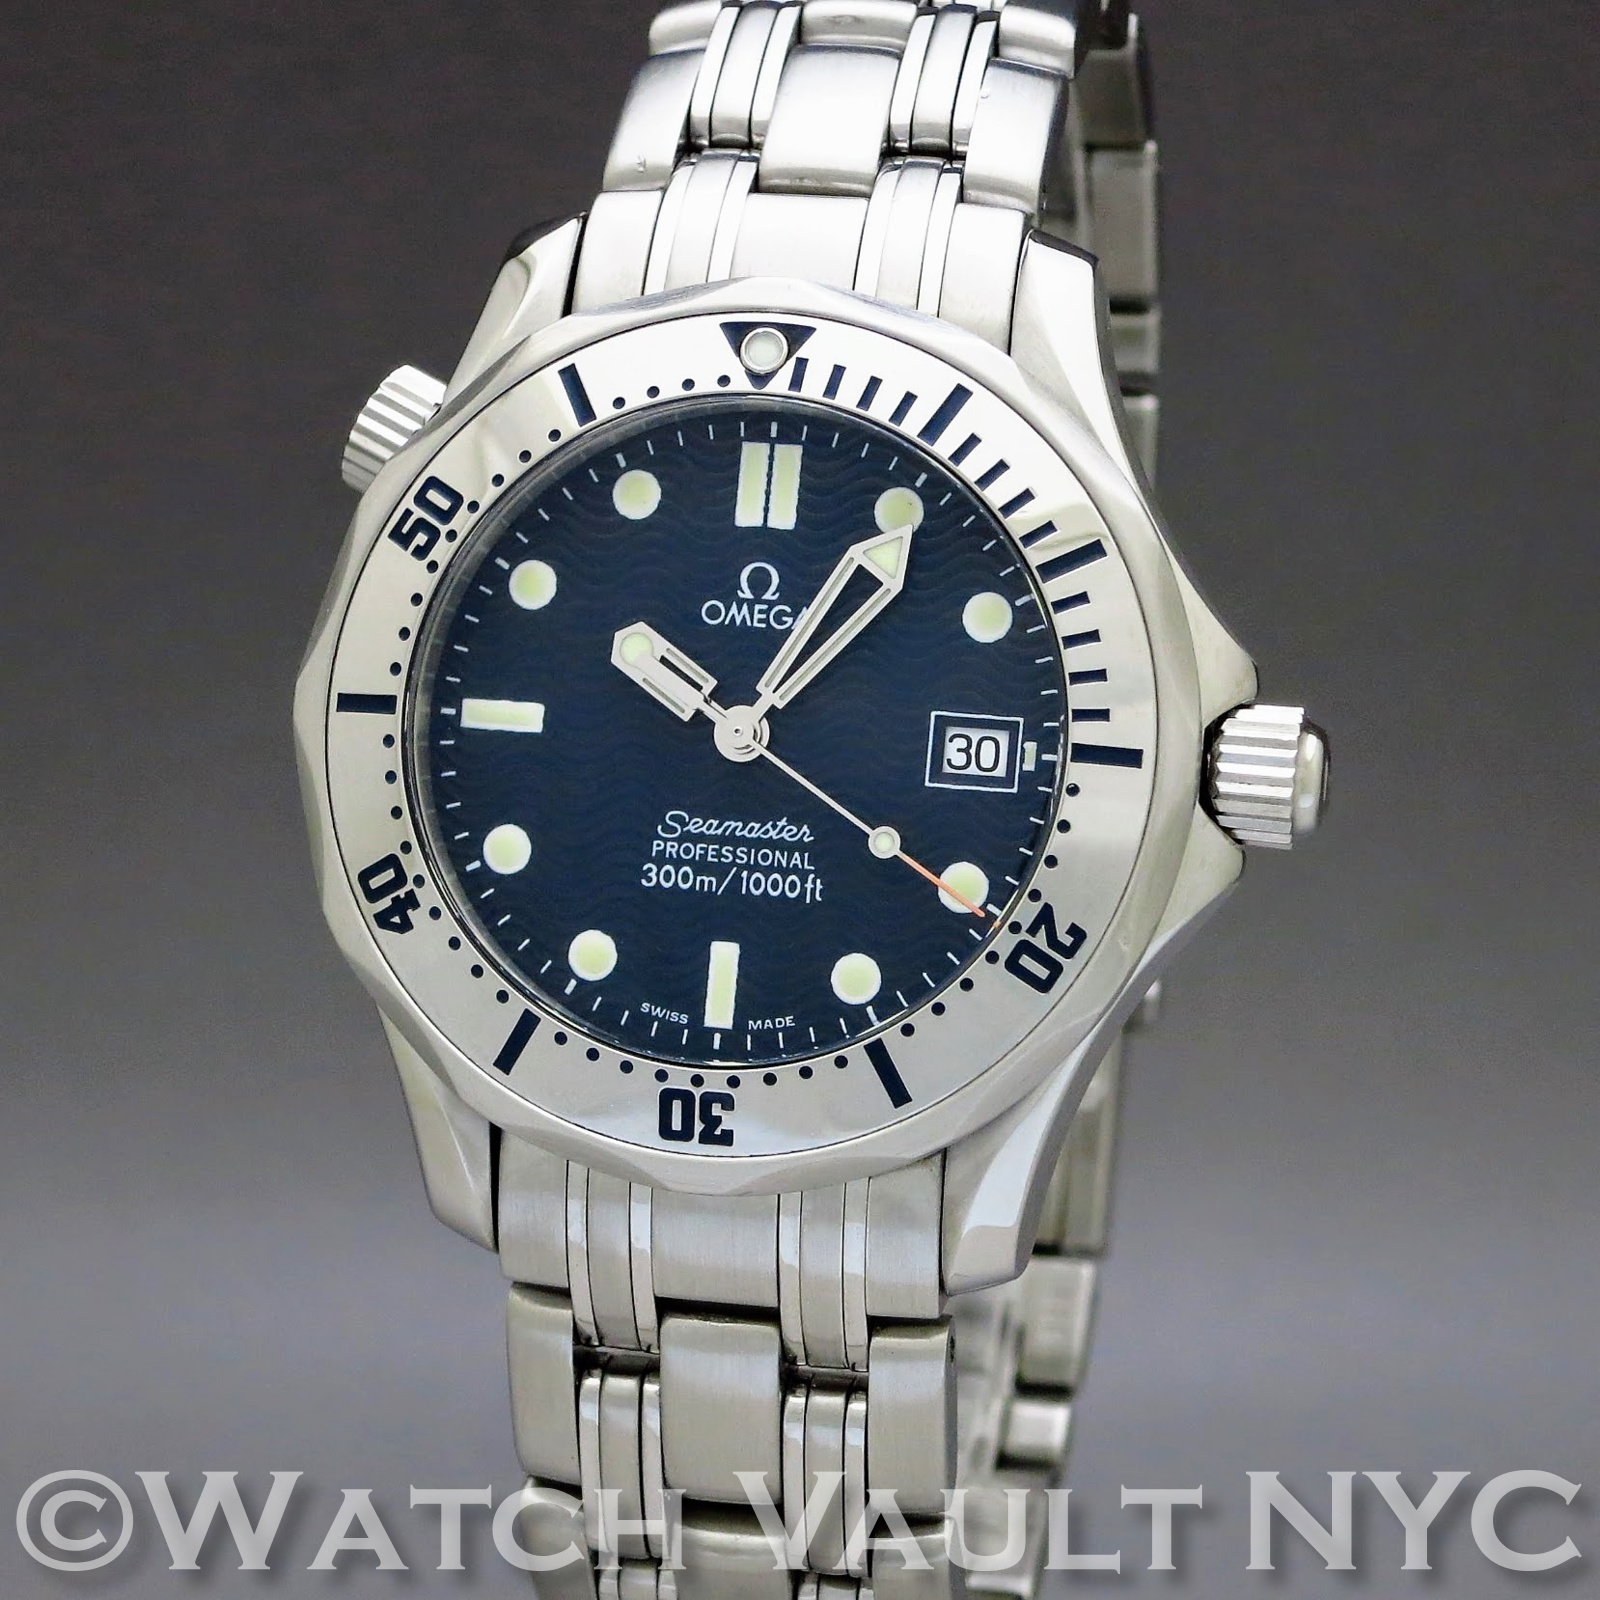 Omega seamaster professional 300m 36mm quartz for Omega seamaster professional